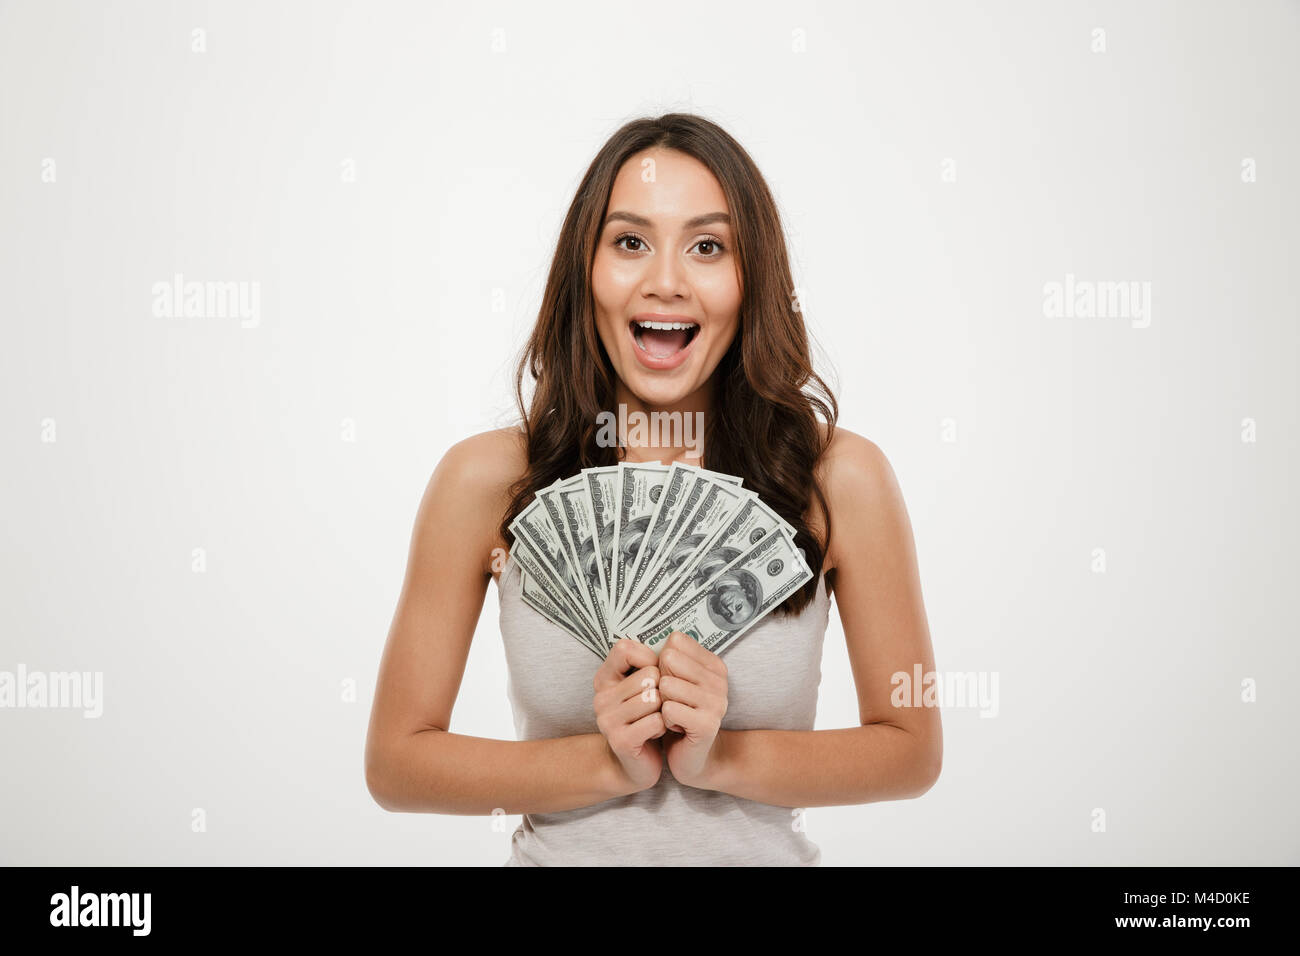 Image of gorgeous brunette female model with long hair holding fan of 100 dollar bills being rich and happy over - Stock Image